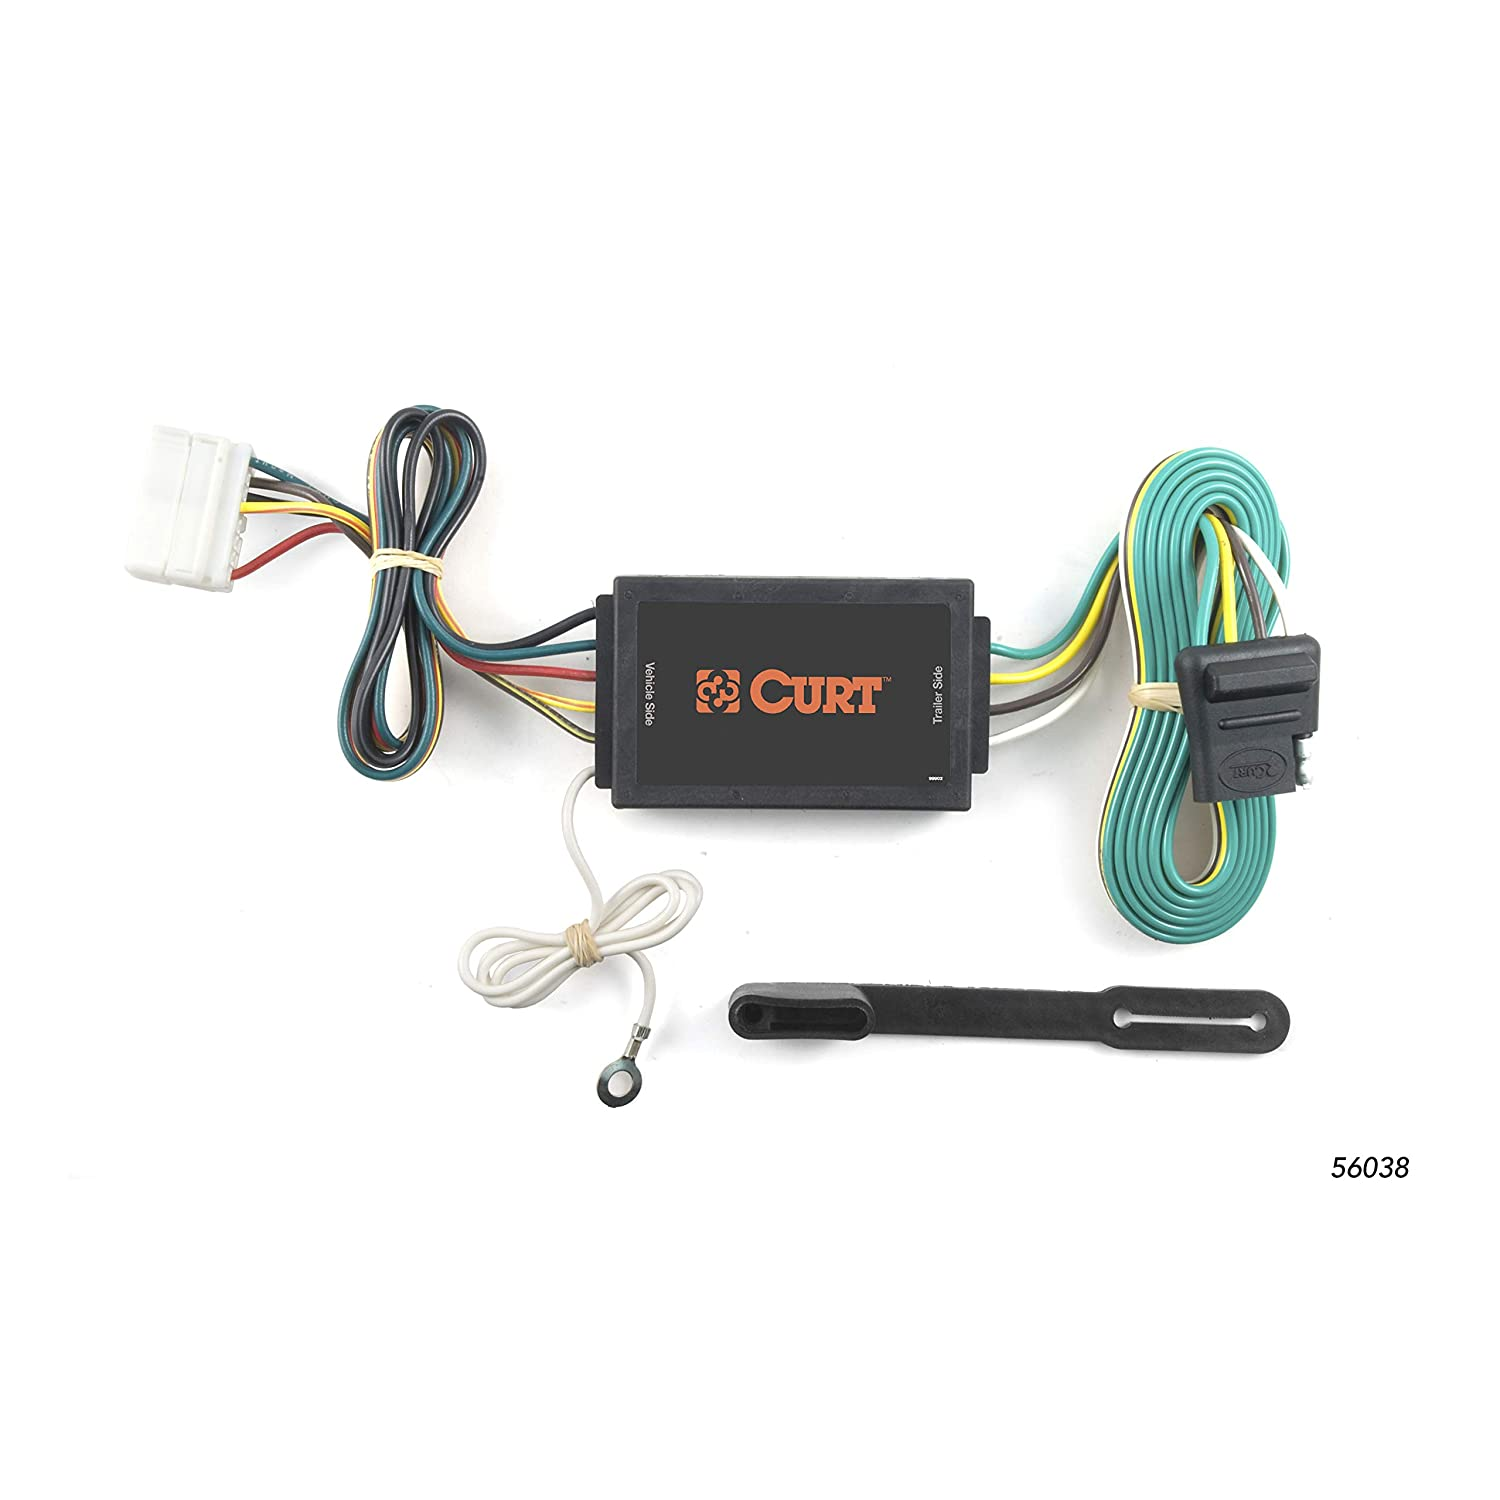 curt 56038 vehicle side custom 4 pin trailer wiring harness for select acura mdx suv Chevy Astro Trailer Wiring Harness